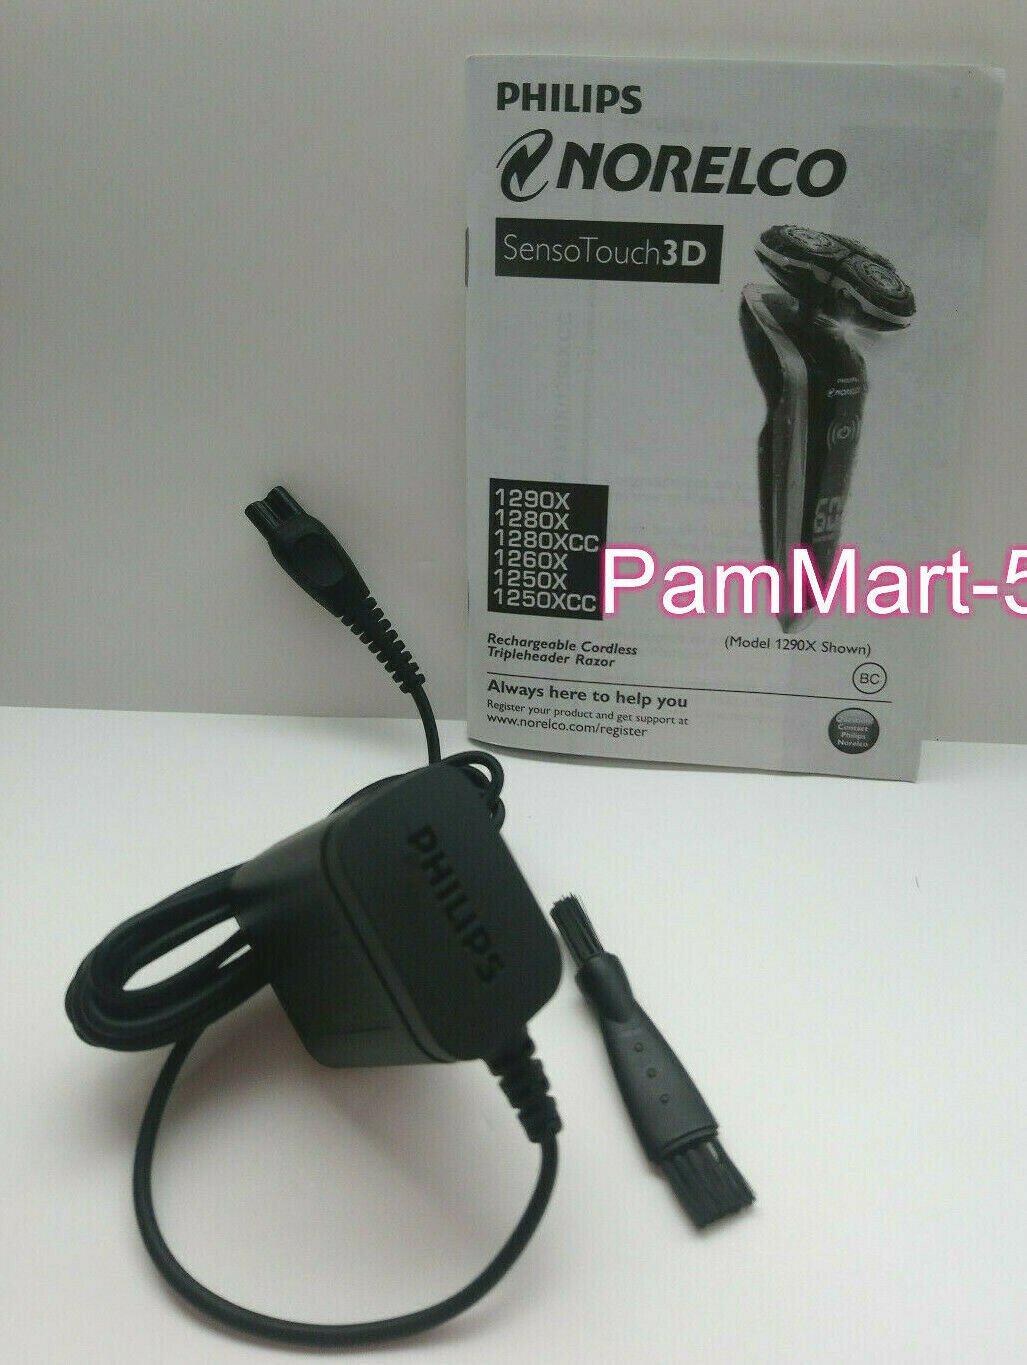 Philips Norelco Power cord wall adapter RQ12 1250X 1260X 1280X 1290X 1250cc 1255